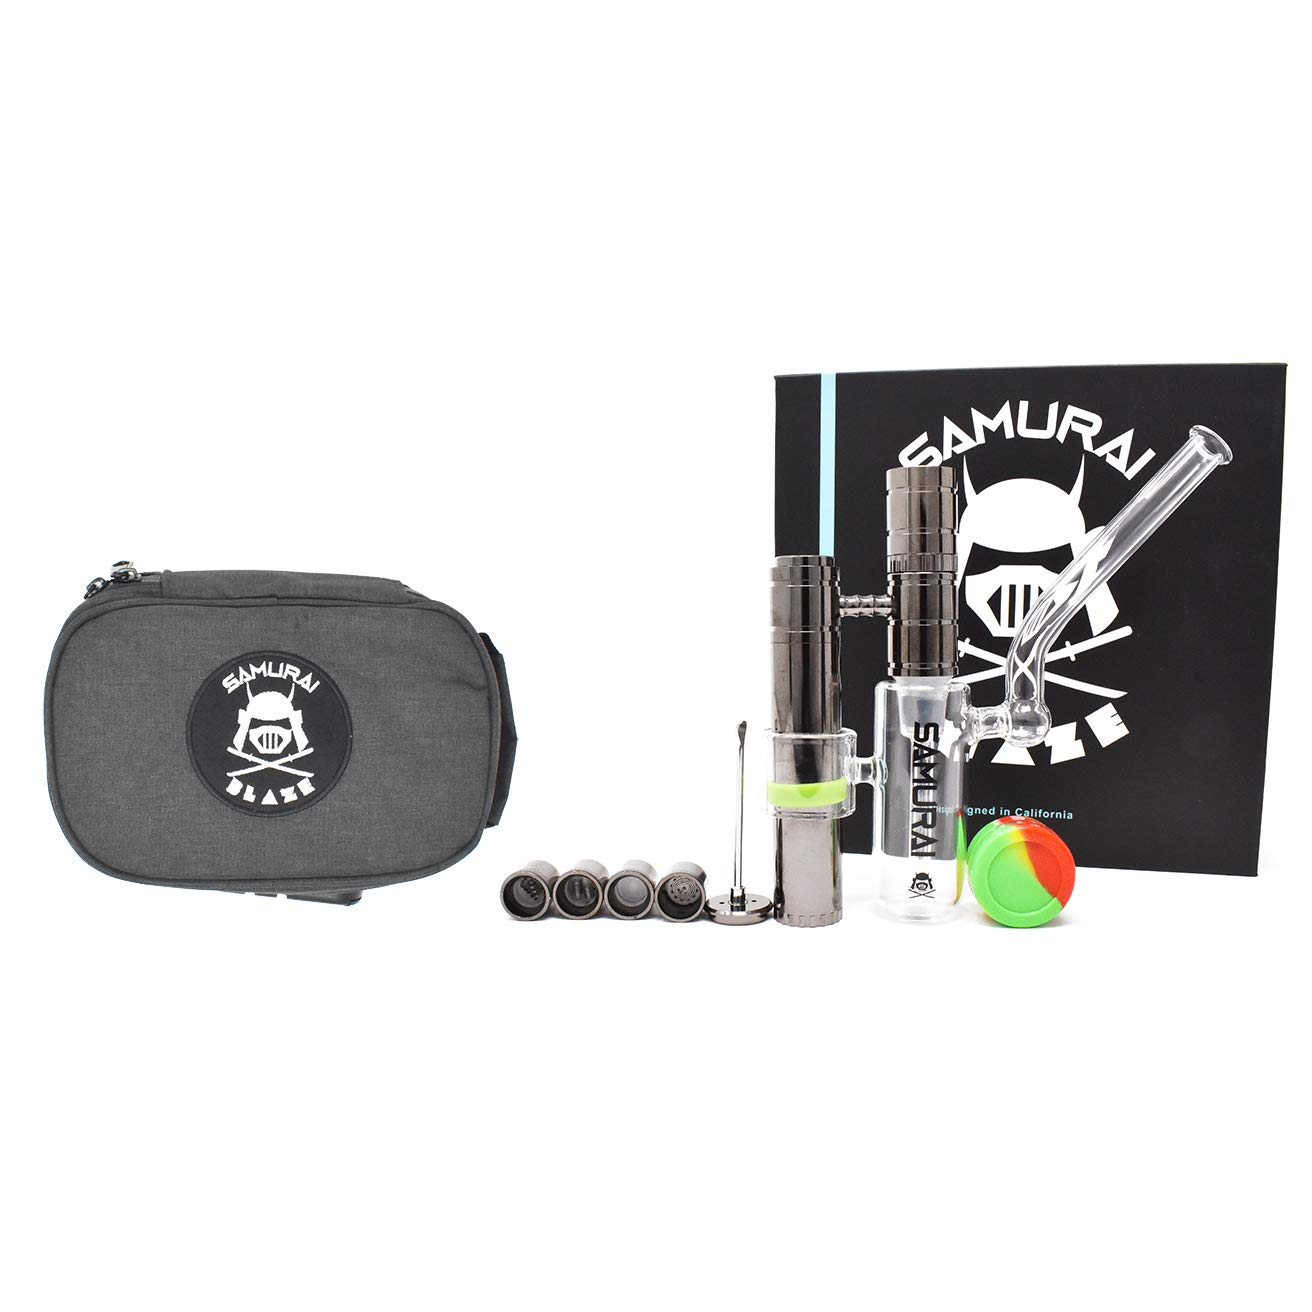 Smell Proof STASH Bag/Pouch/Bag   Thick Carbon Lined with Customizable Compartments - Art Supplies, Smelly Food, Smoking Accessories (BAPE, BAPE Combo) by SAMURAI BLAZE (Image #1)